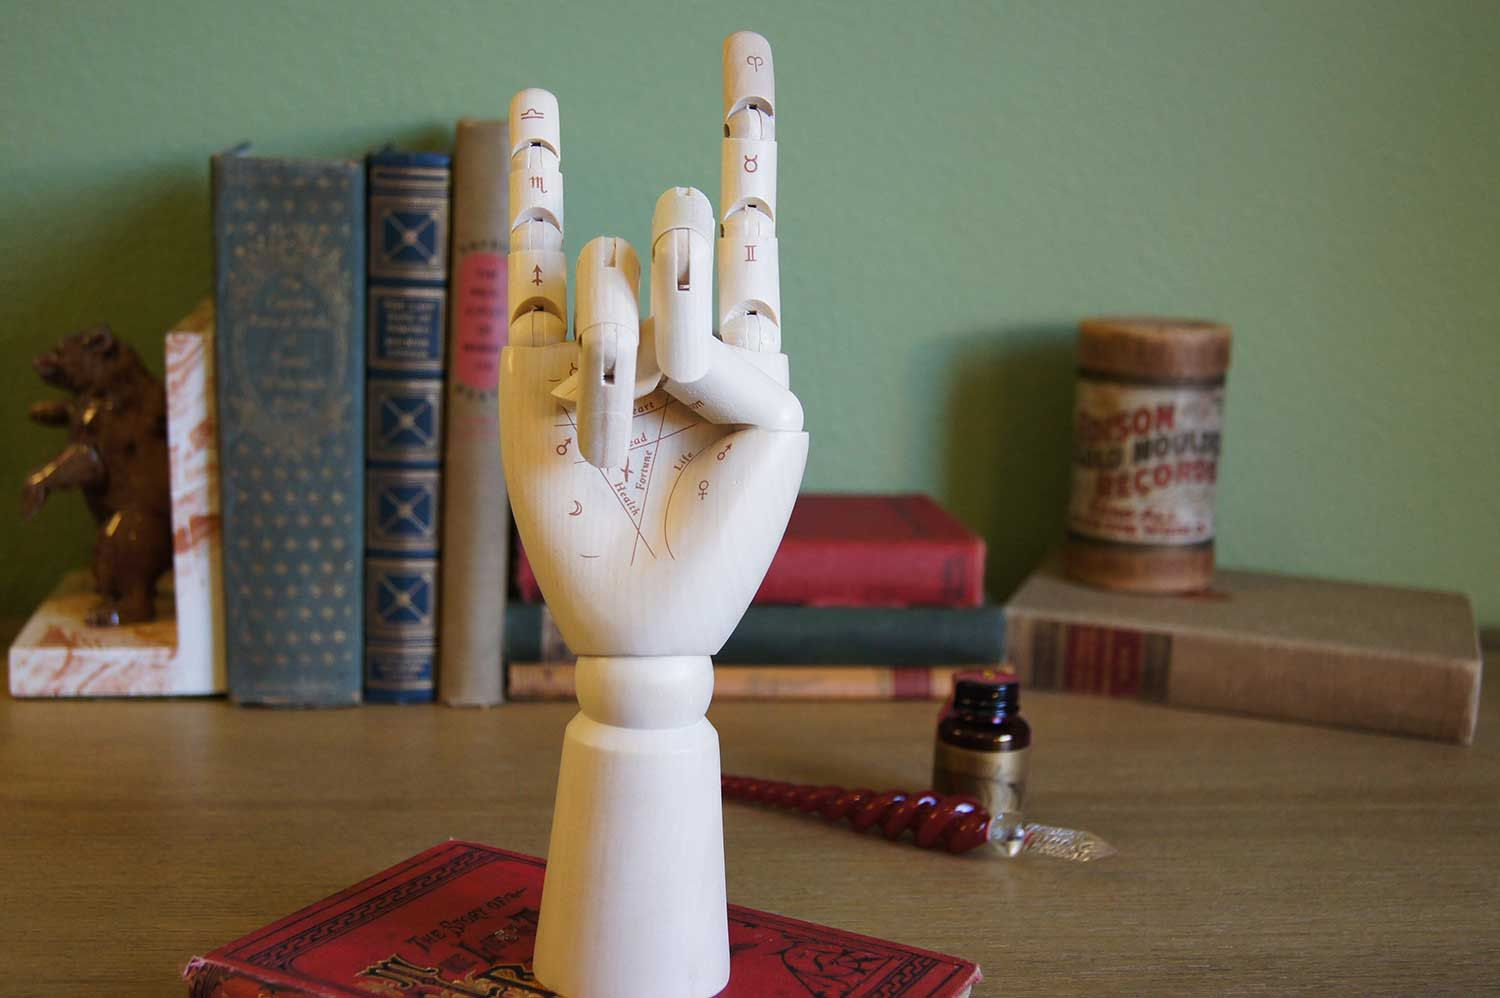 Artist's Palmistry Hand Model by ArcaneObjects on Etsy